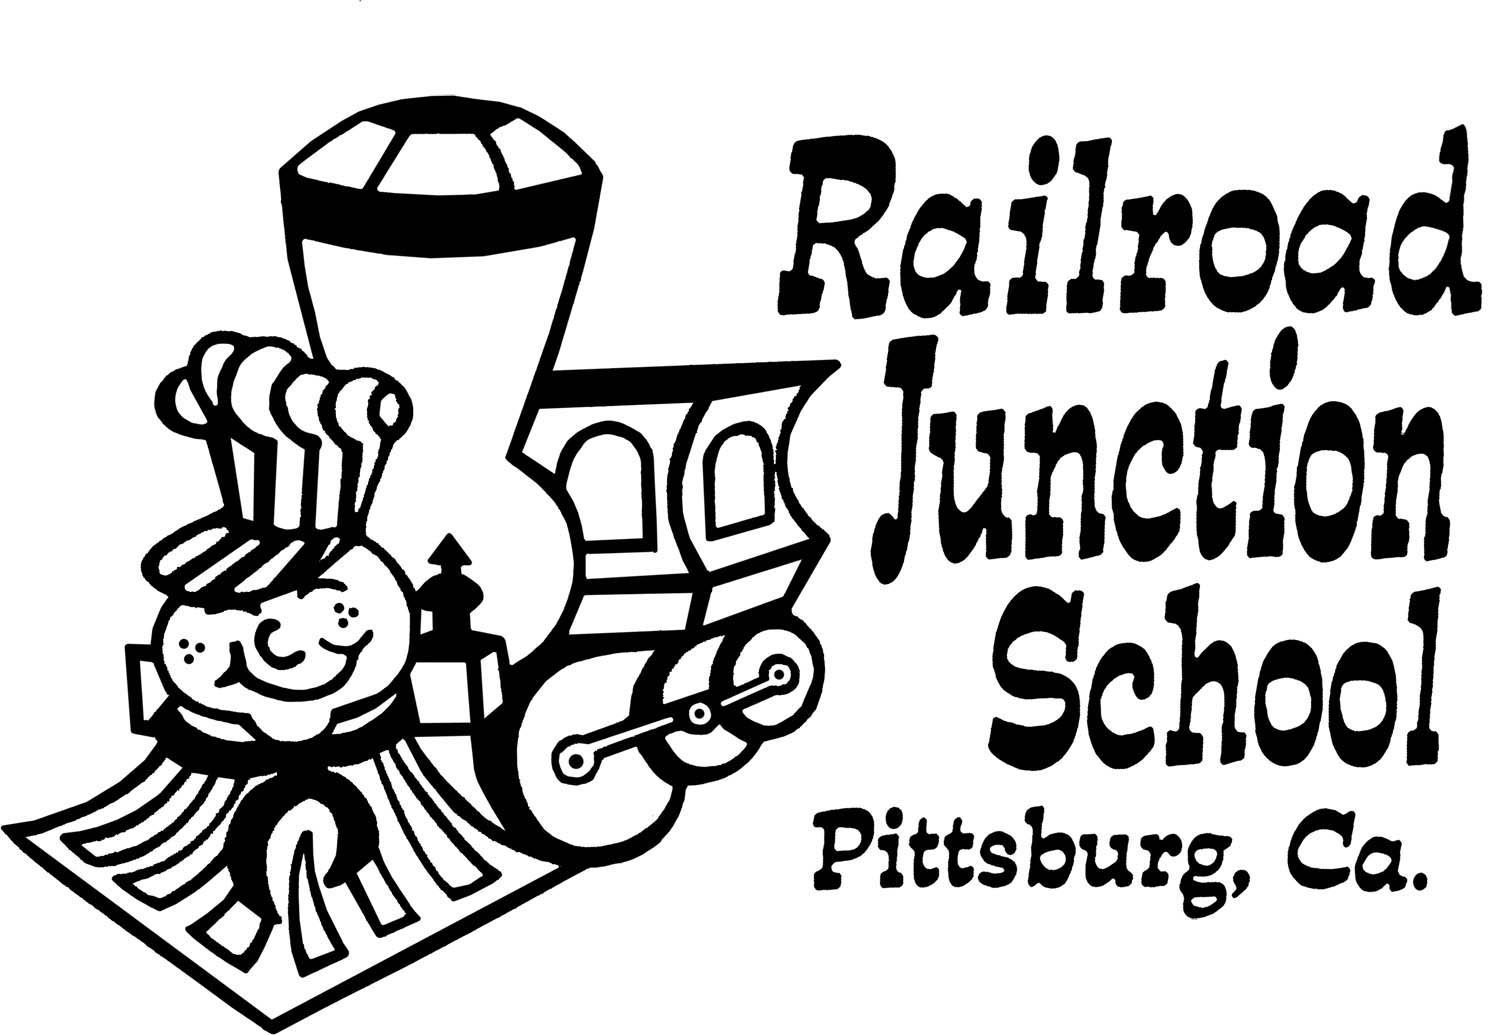 Railroad Junction School